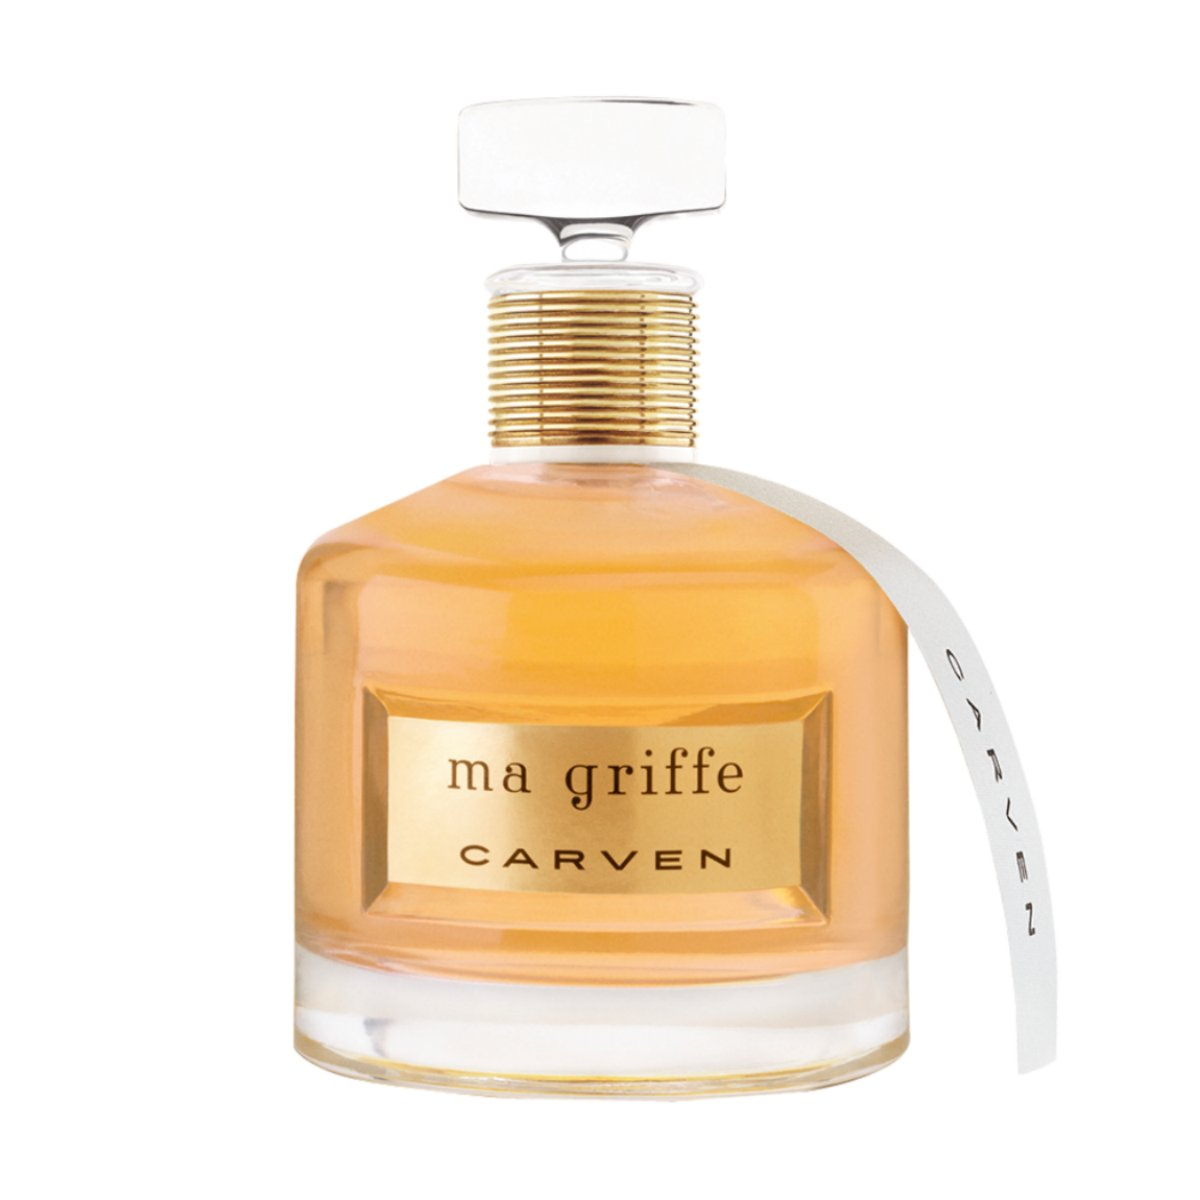 carven ma griffe eau de parfum spray 100ml. Black Bedroom Furniture Sets. Home Design Ideas